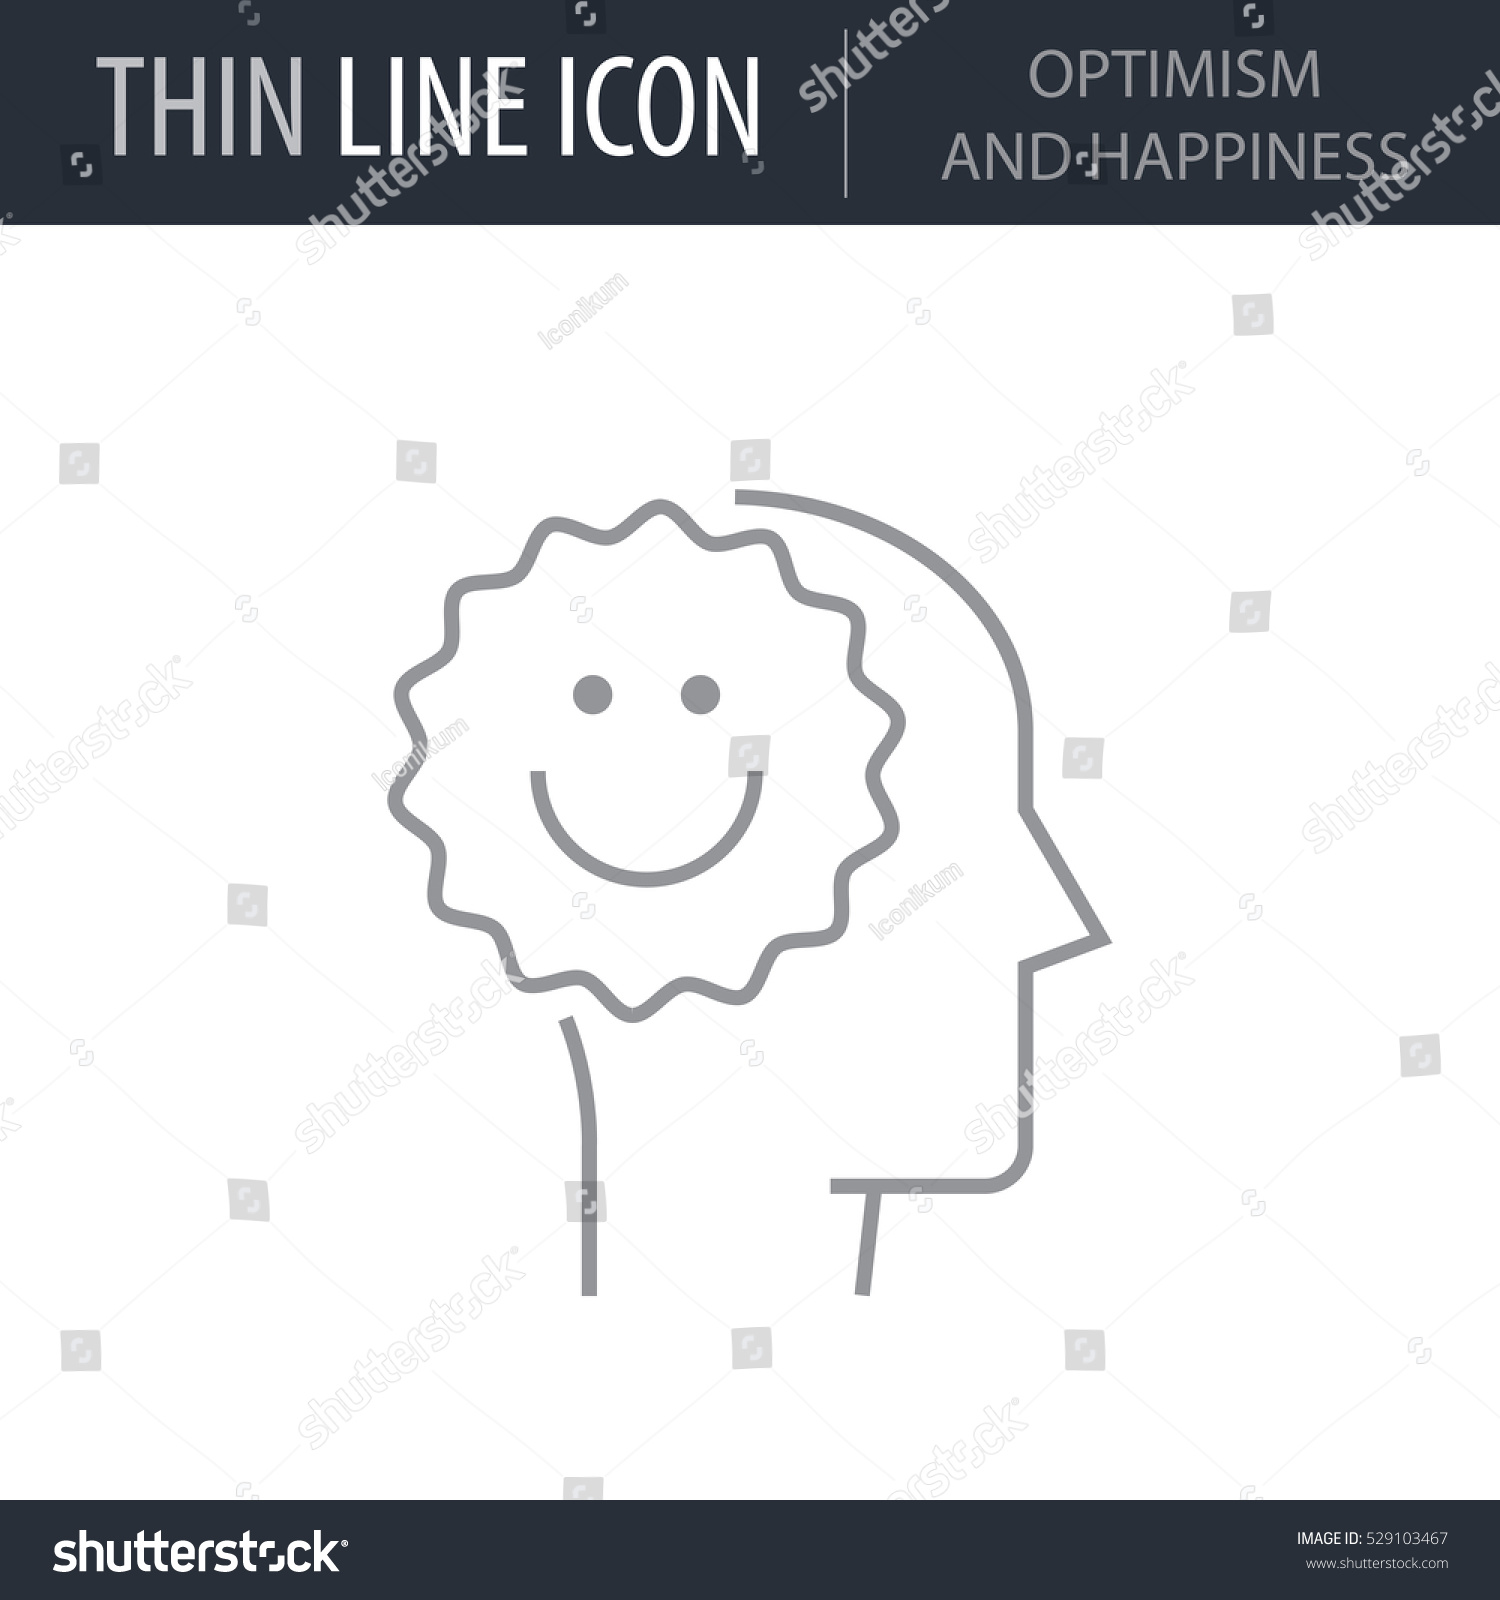 Symbol Optimism Happiness Thin Line Icon Stock Vector Royalty Free